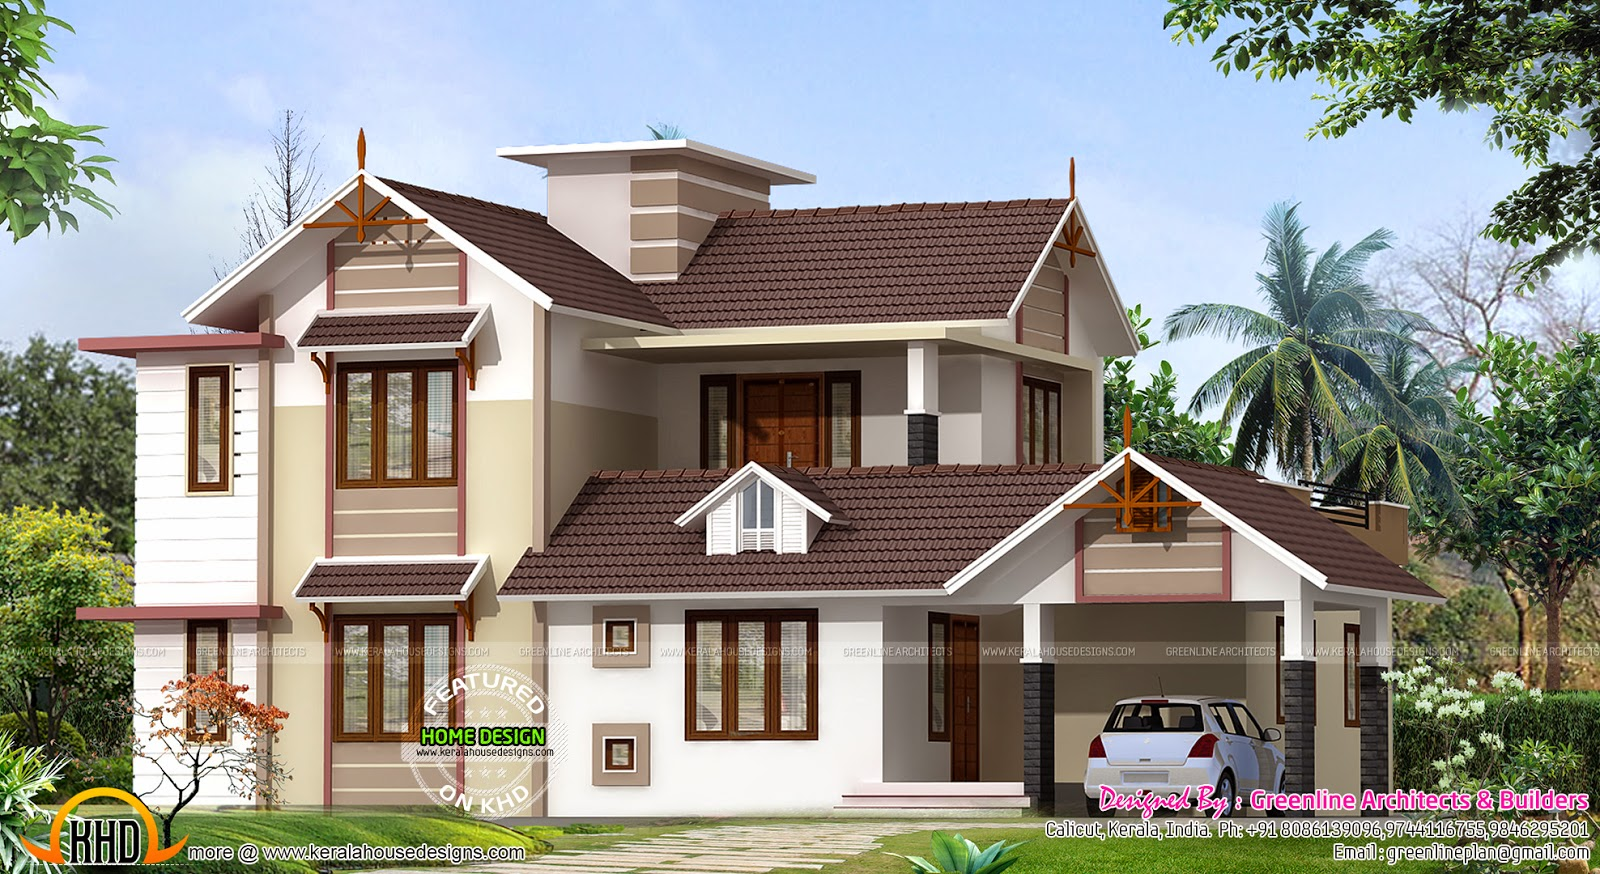 2400 sq ft new house design kerala home design and floor for Latest building designs and plans